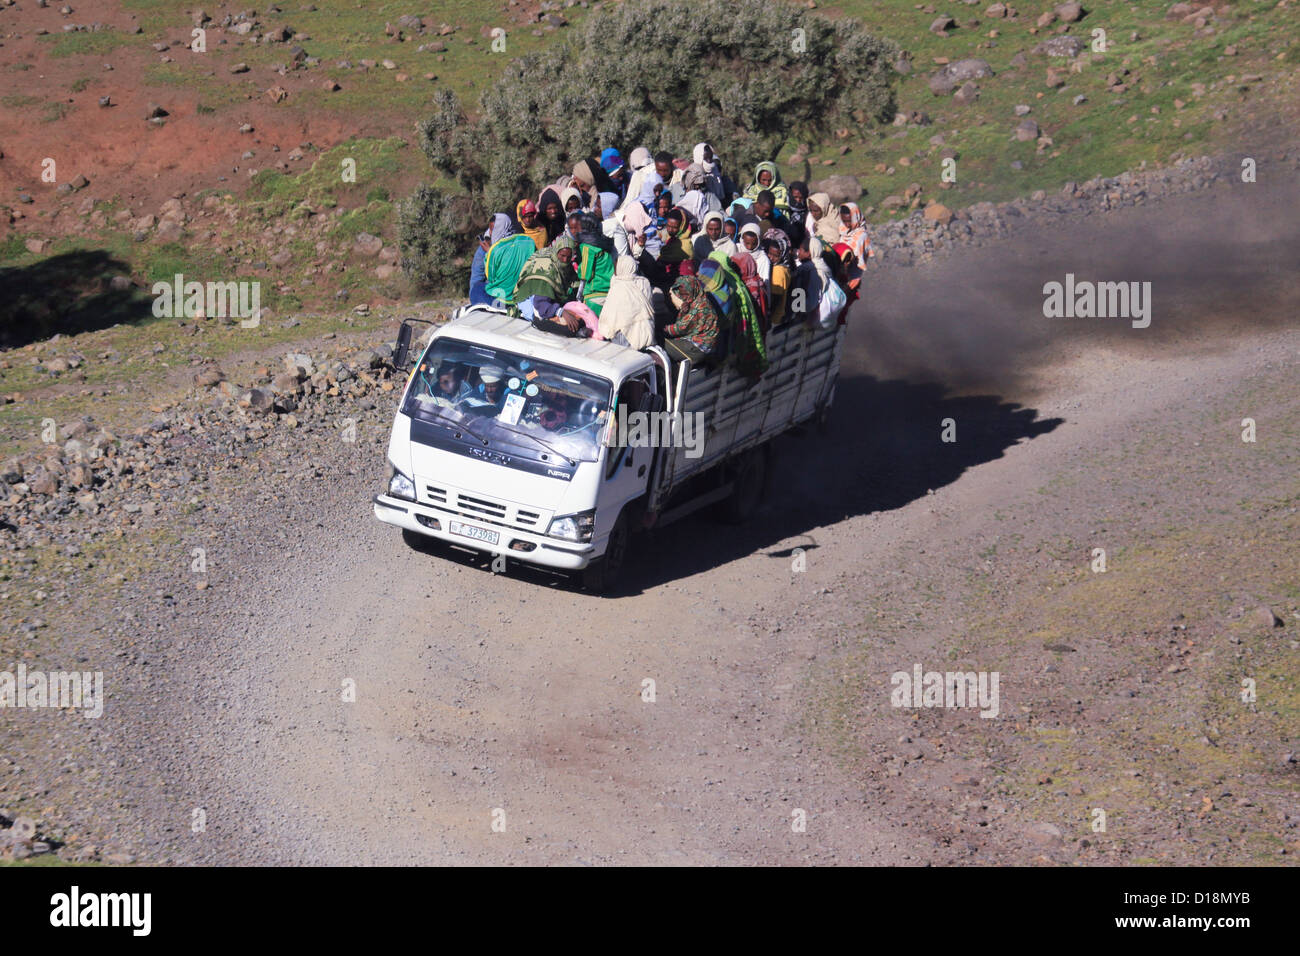 Africa, Ethiopia, Simien mountains local transport - Stock Image